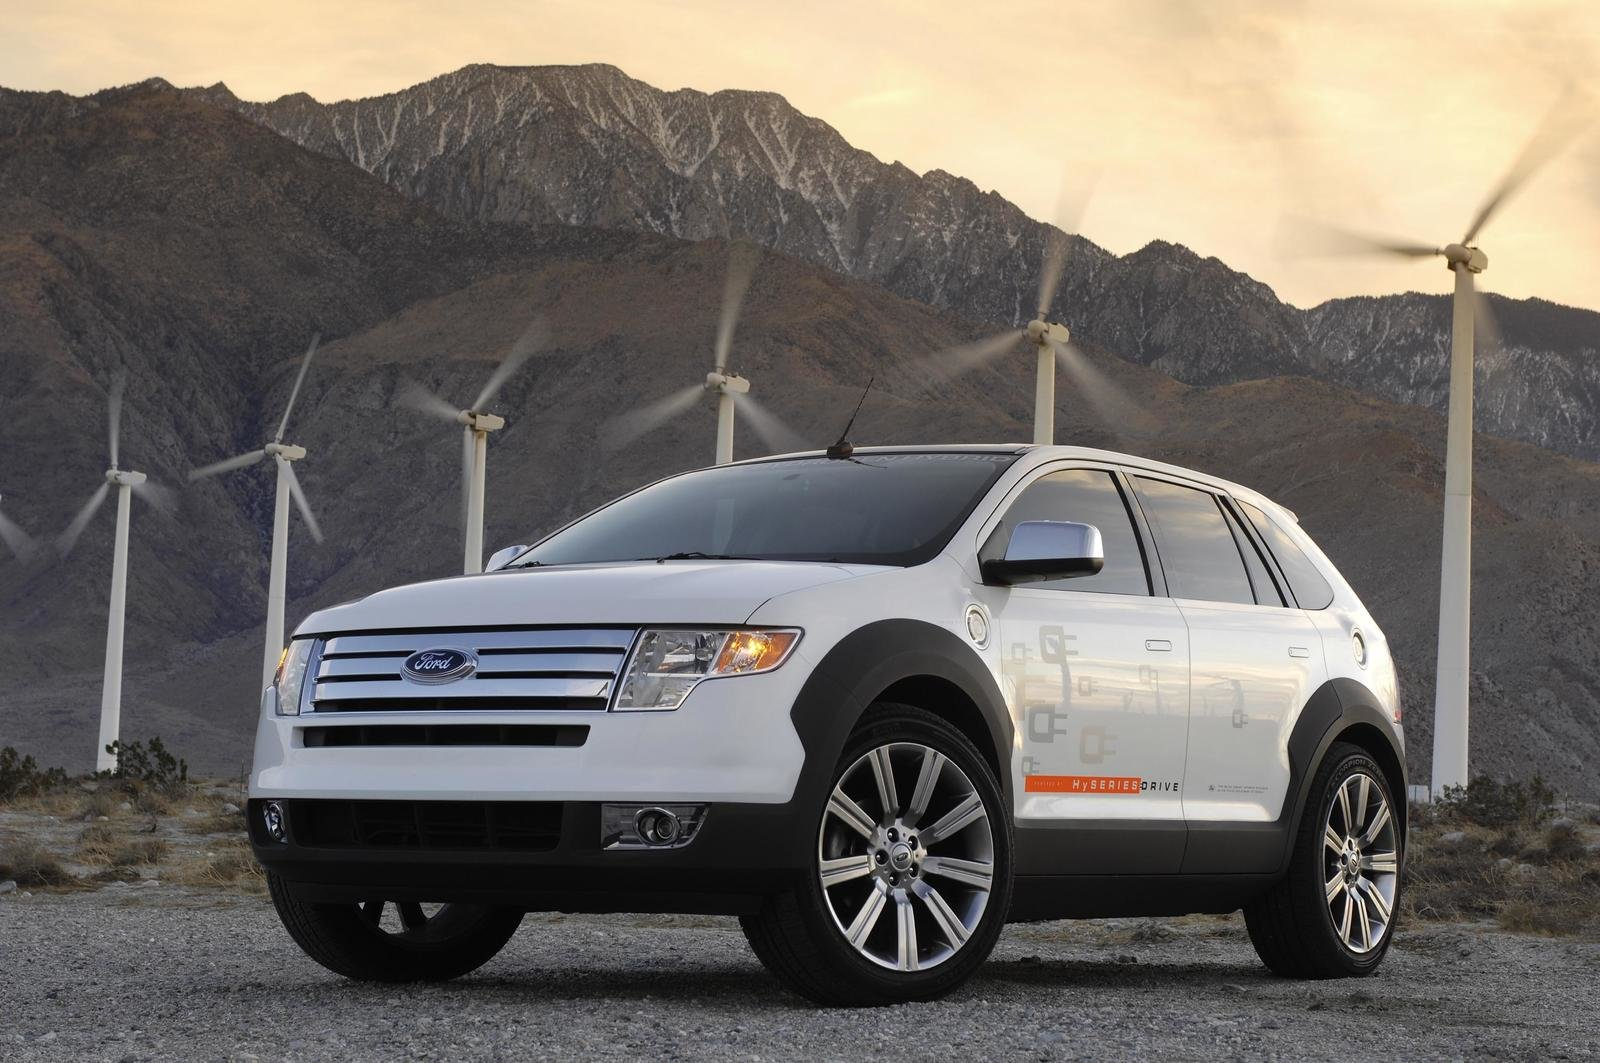 2007 ford edge hyseries plug in hybrid picture 155483 car review top speed. Black Bedroom Furniture Sets. Home Design Ideas